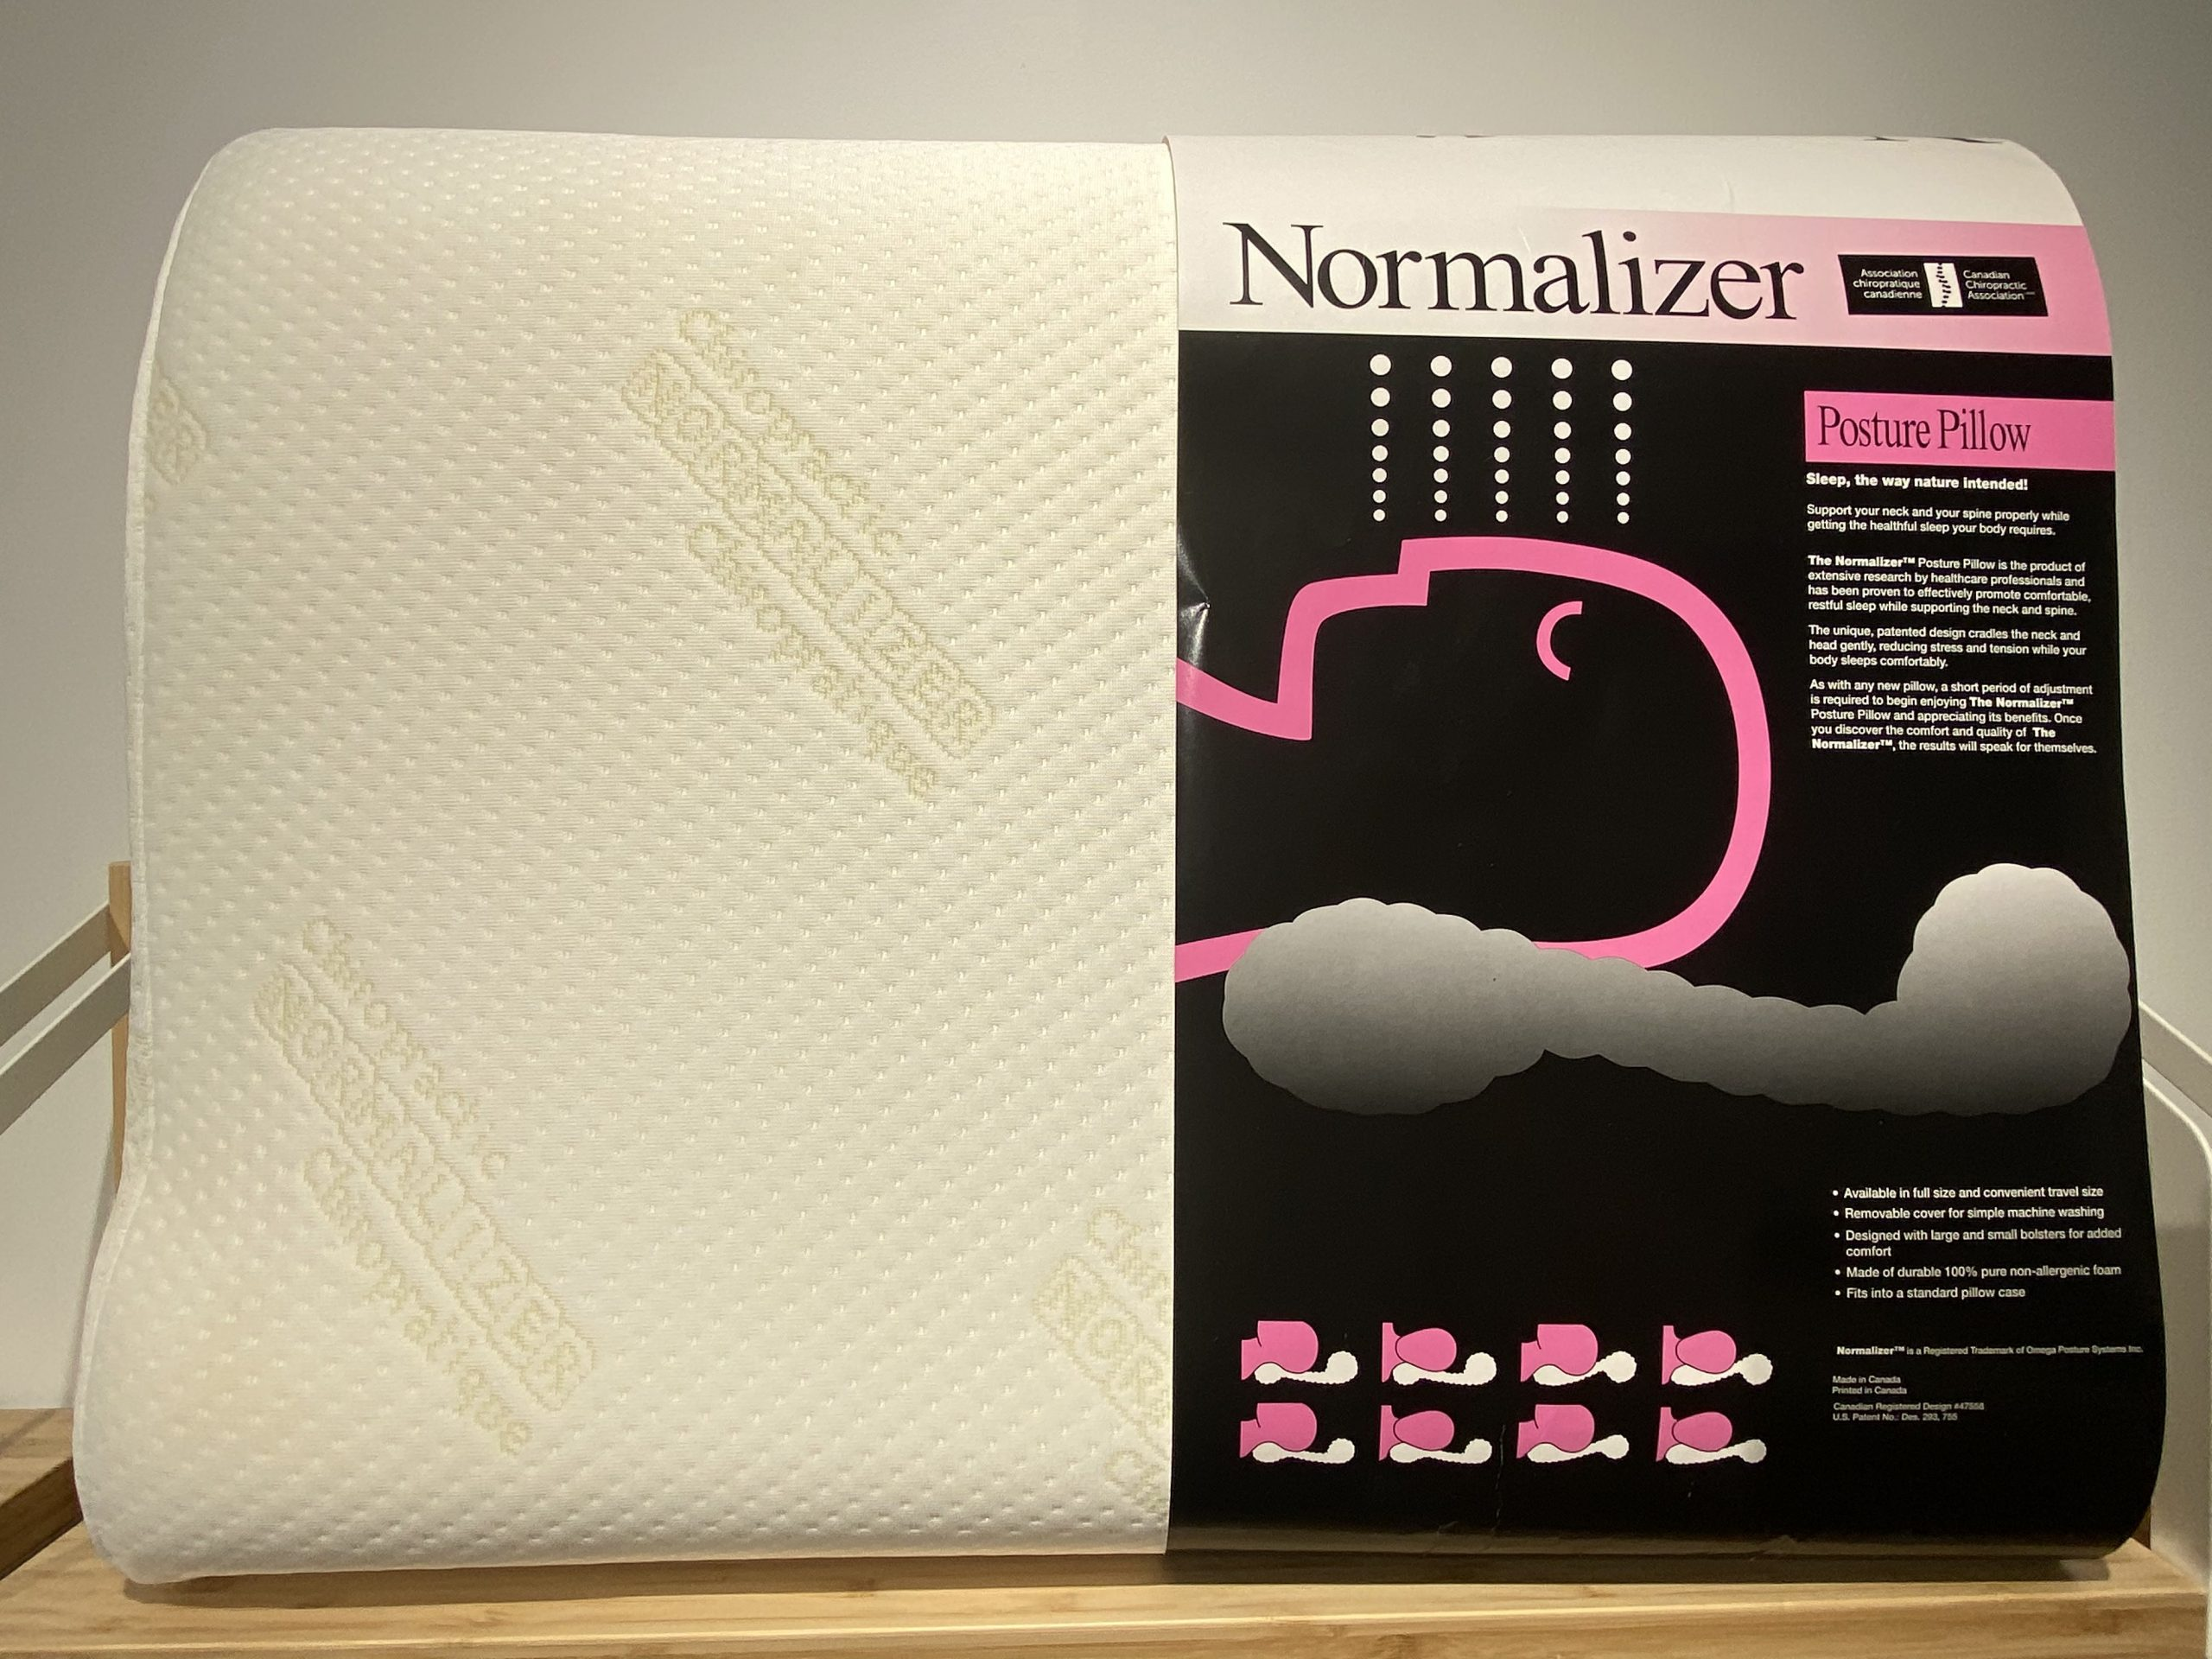 normalizer posture pillow